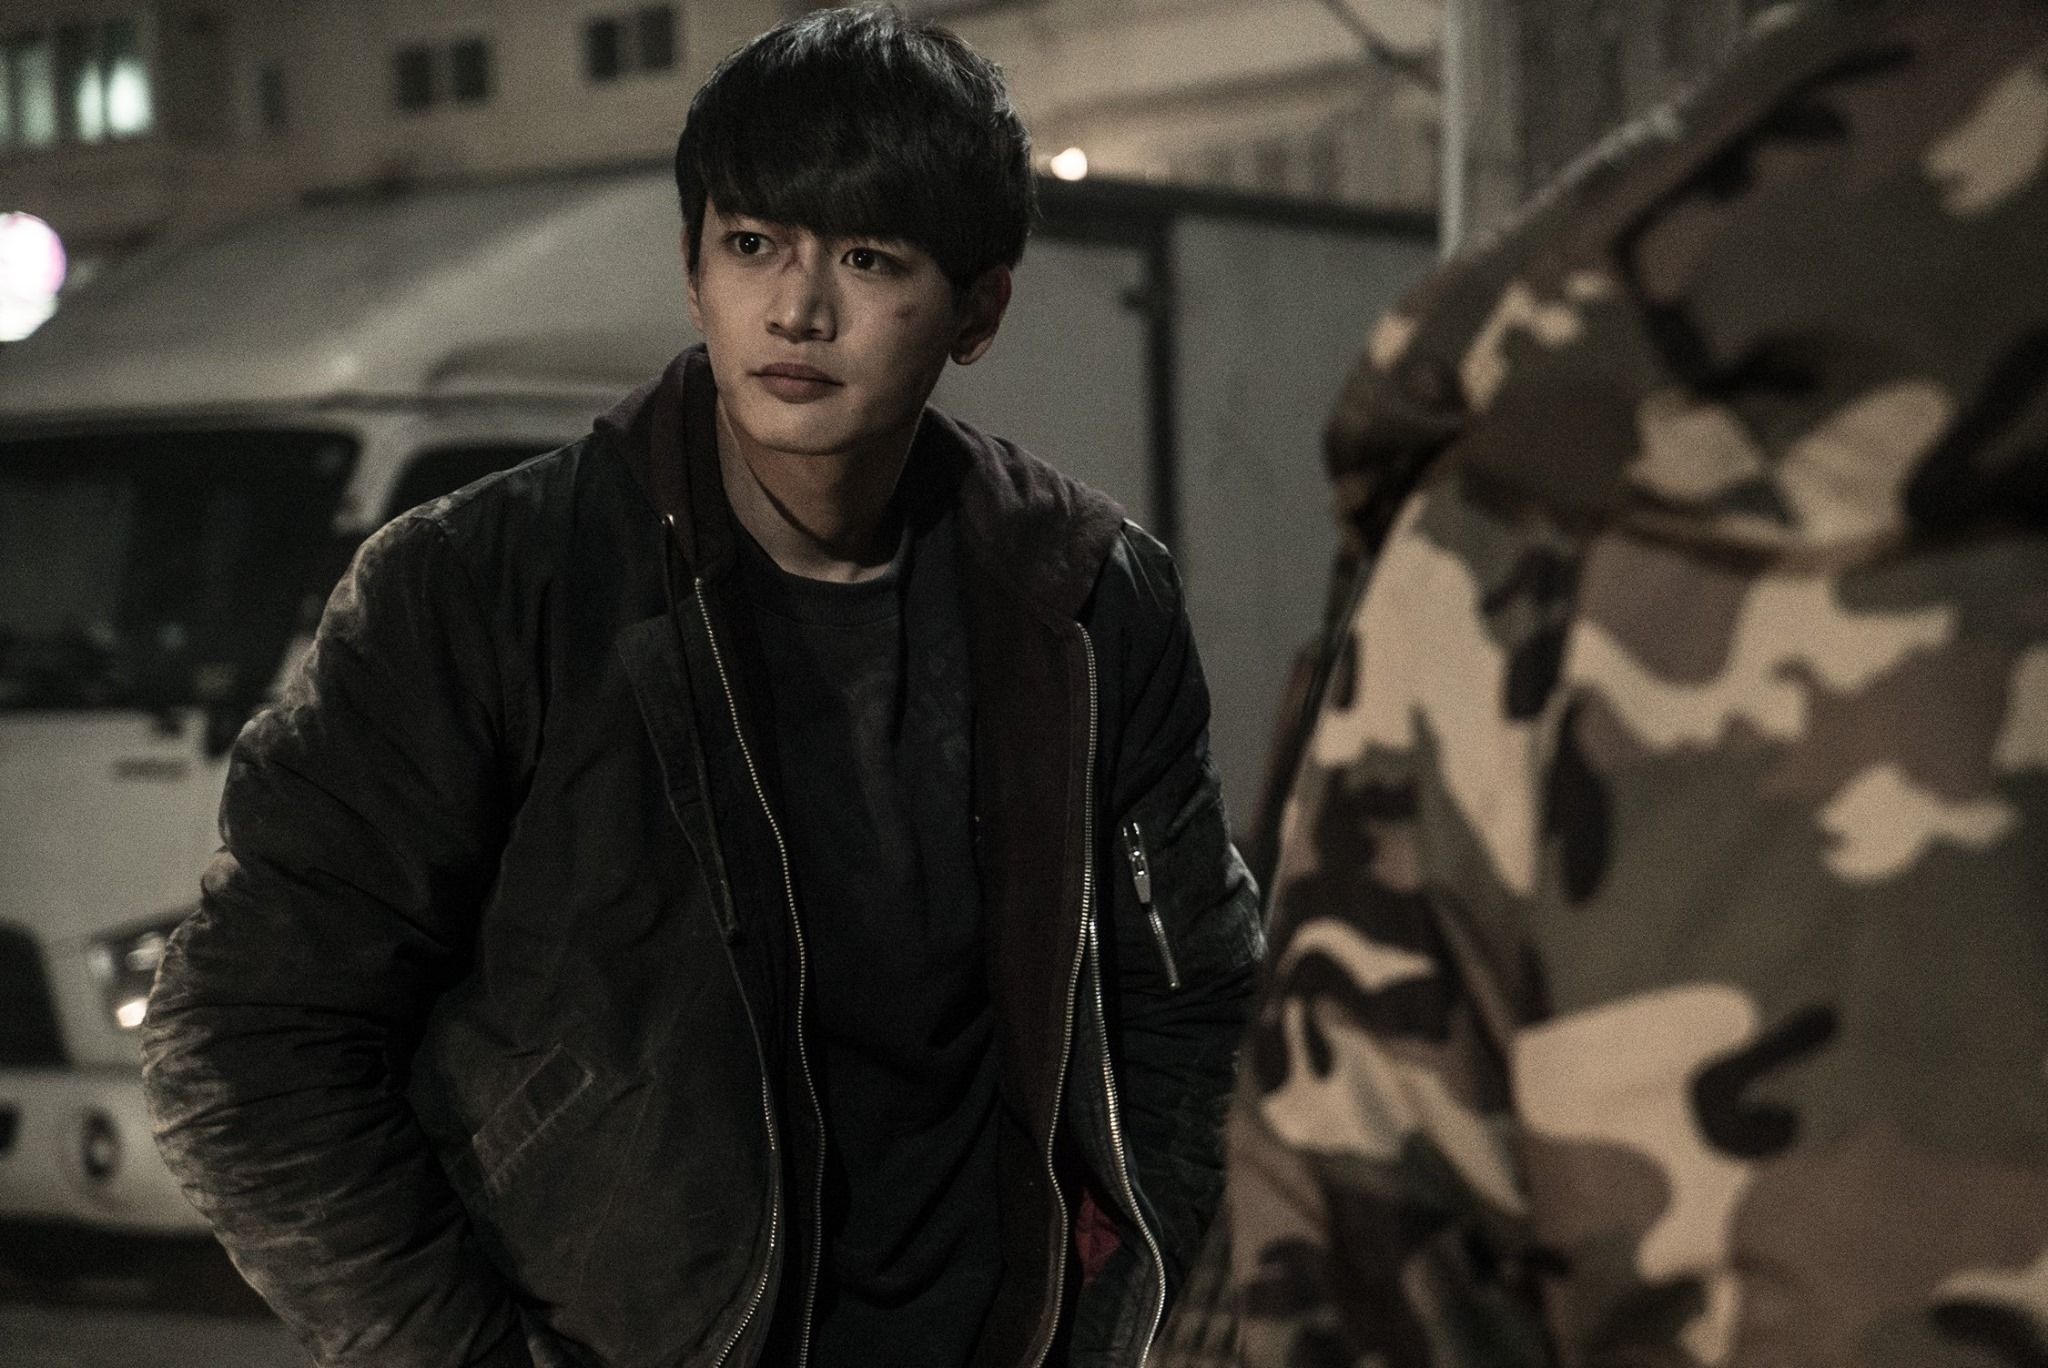 Choi Minho From His Upcoming Movie Derailed And Behind The Scene Shots Shinee Shinee Minho Choi Min Ho